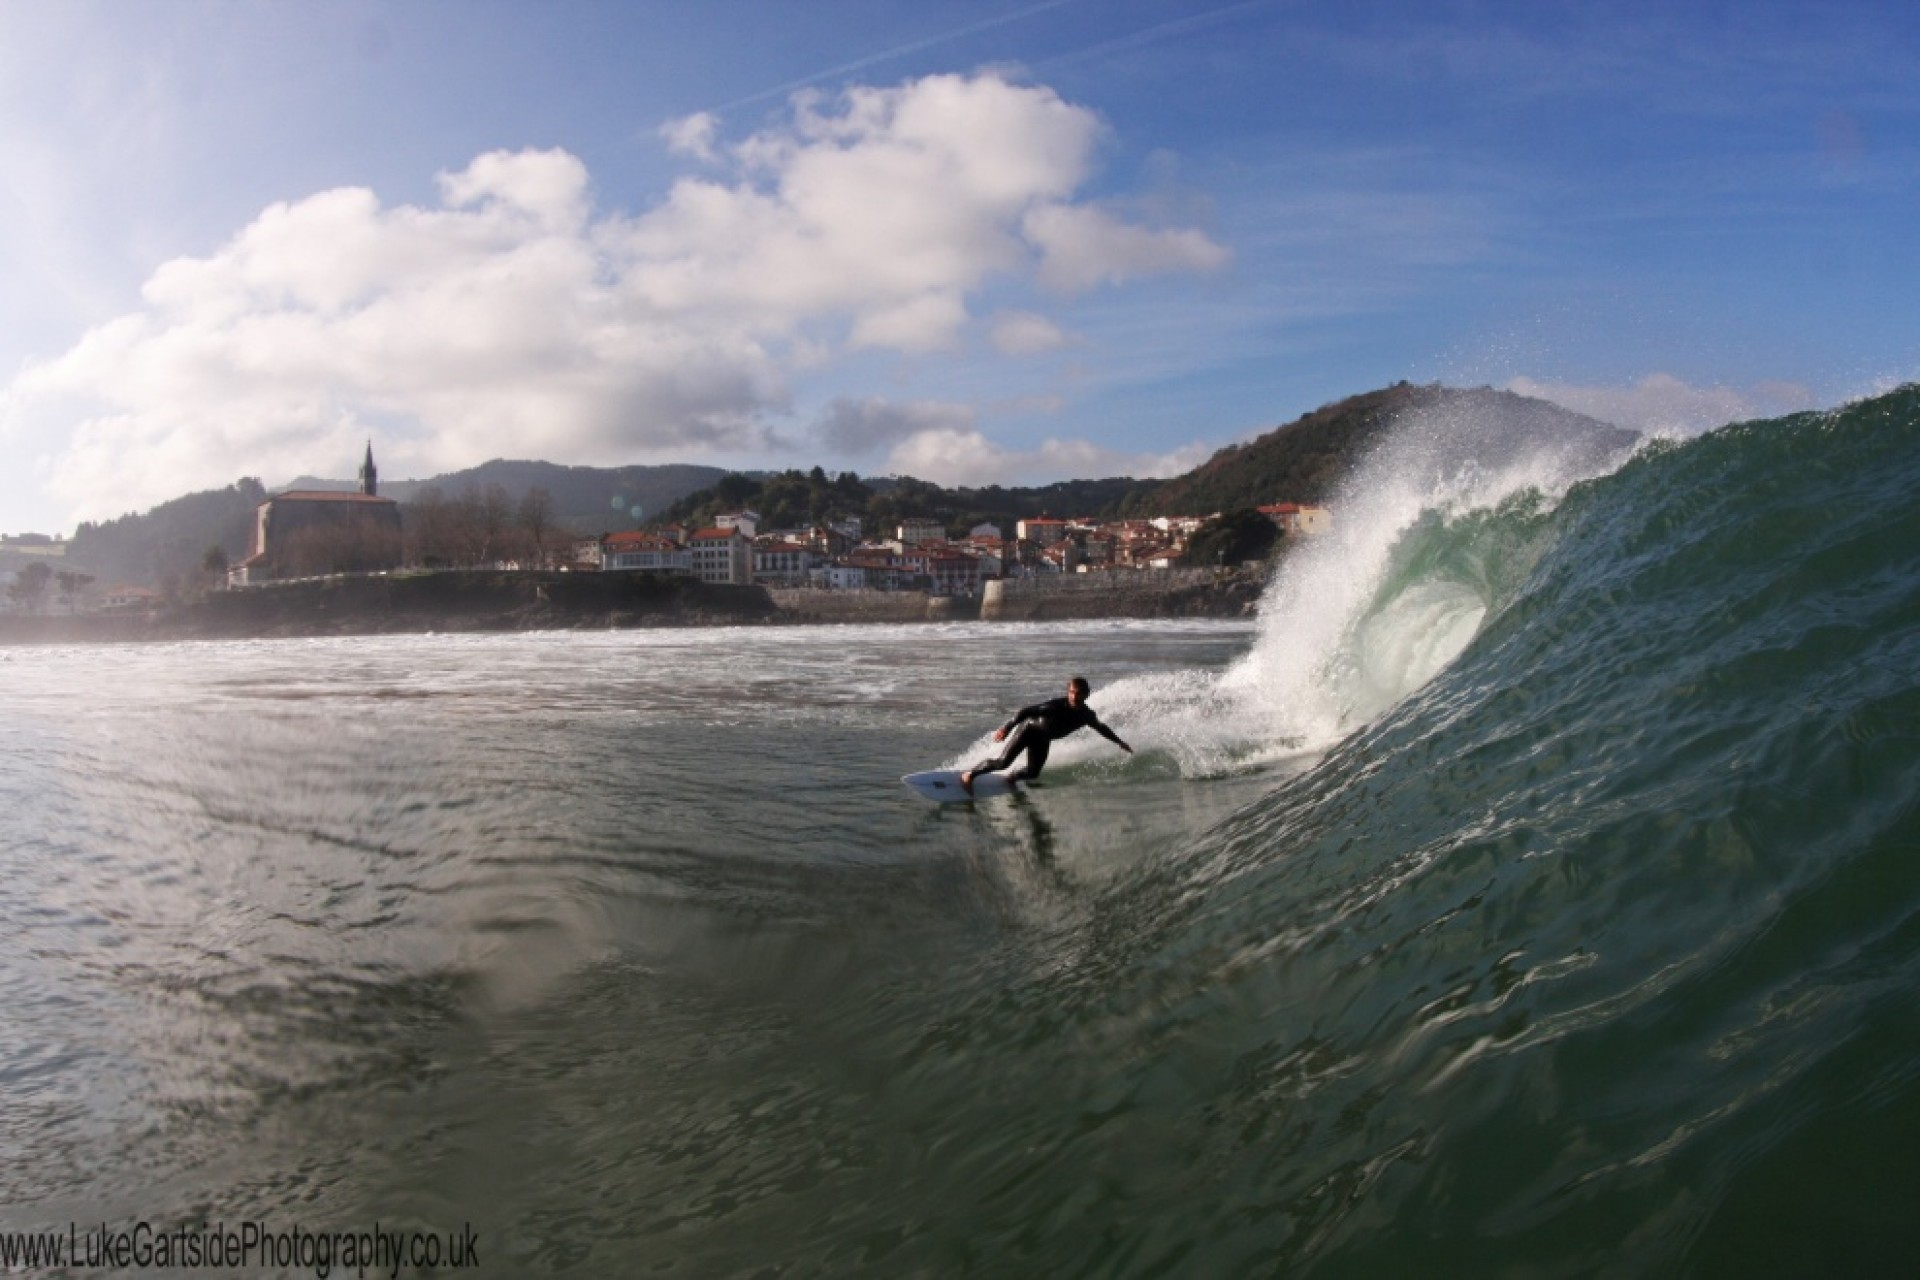 Luke Gartside's photo of Mundaka